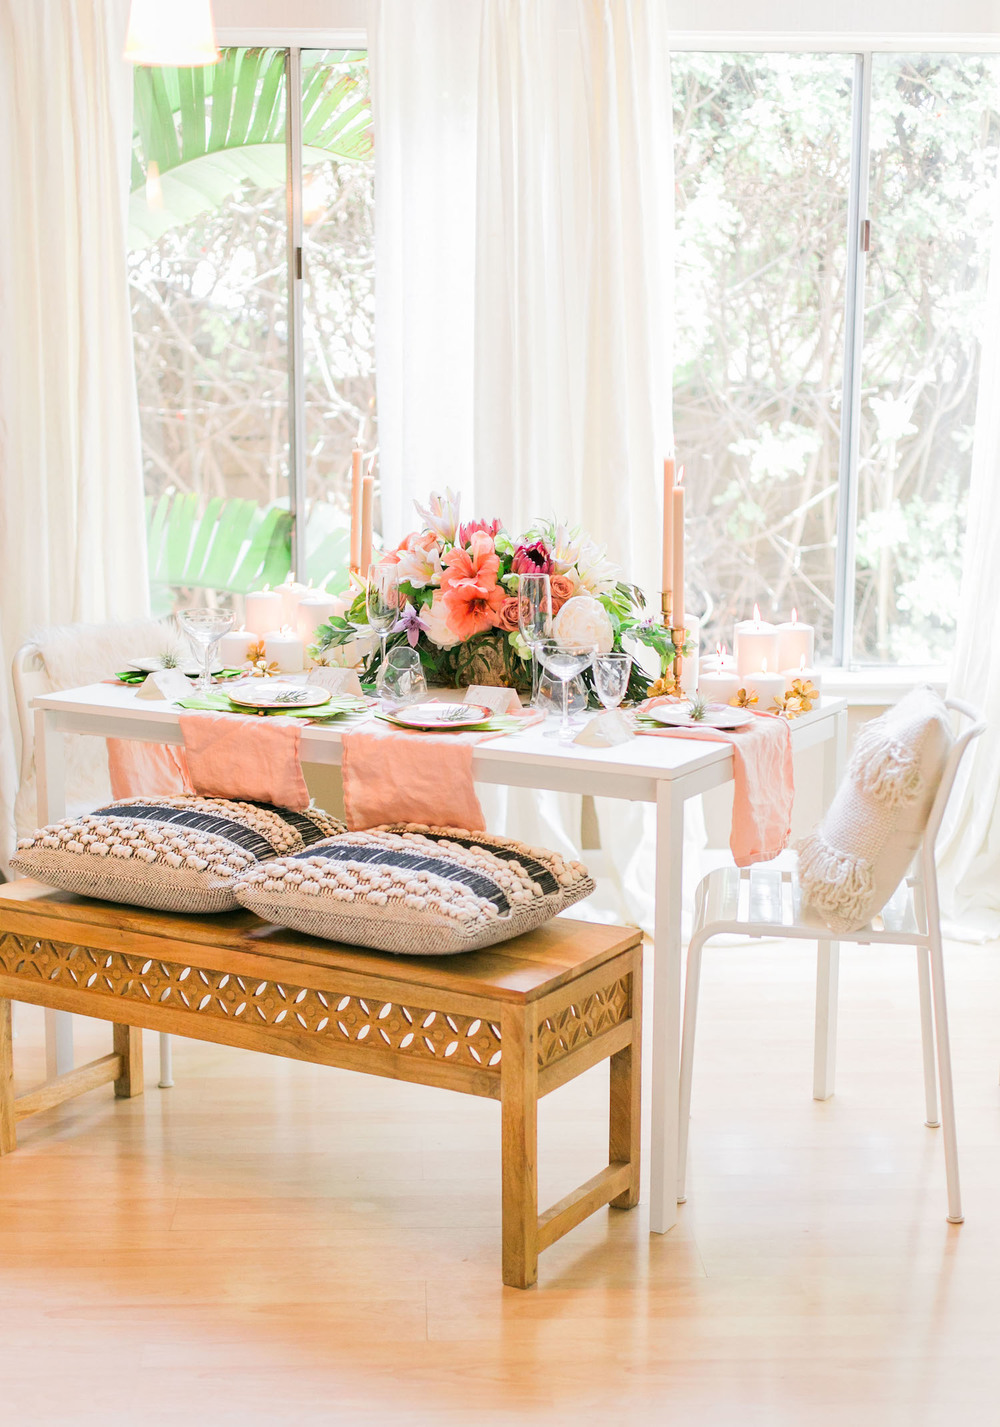 Pull together mismatched furniture with a simple color scheme | A Fabulous Fete